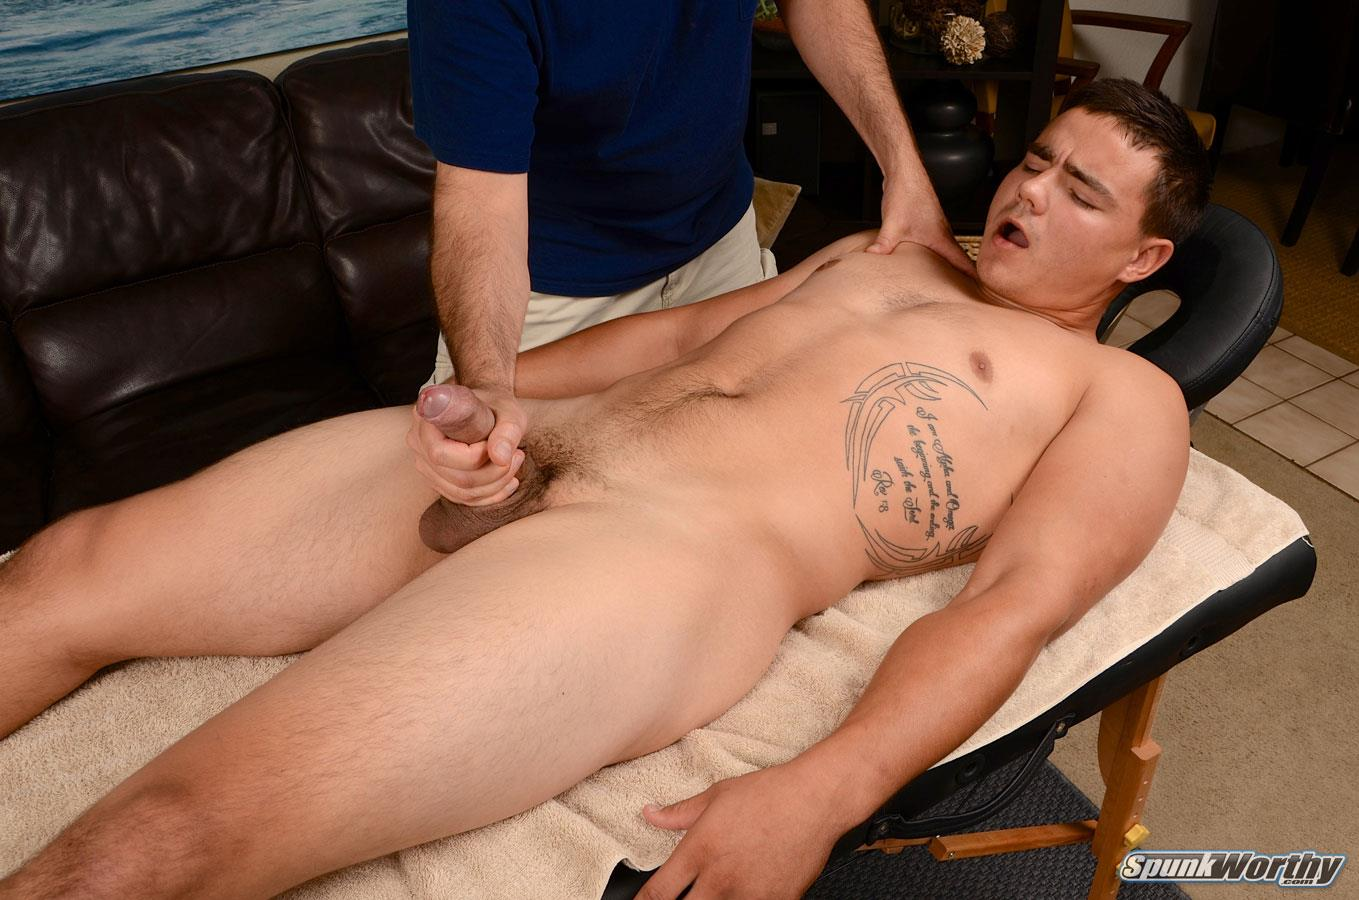 SpunkWorthy-Yuri-Straight-Marine-Getting-Massage-With-A-Happy-Ending-Big-Uncut-Cock-Amateur-Gay-Porn-15 Straight Uncut Marine Gets A Massage With A Happy Ending From A Guy